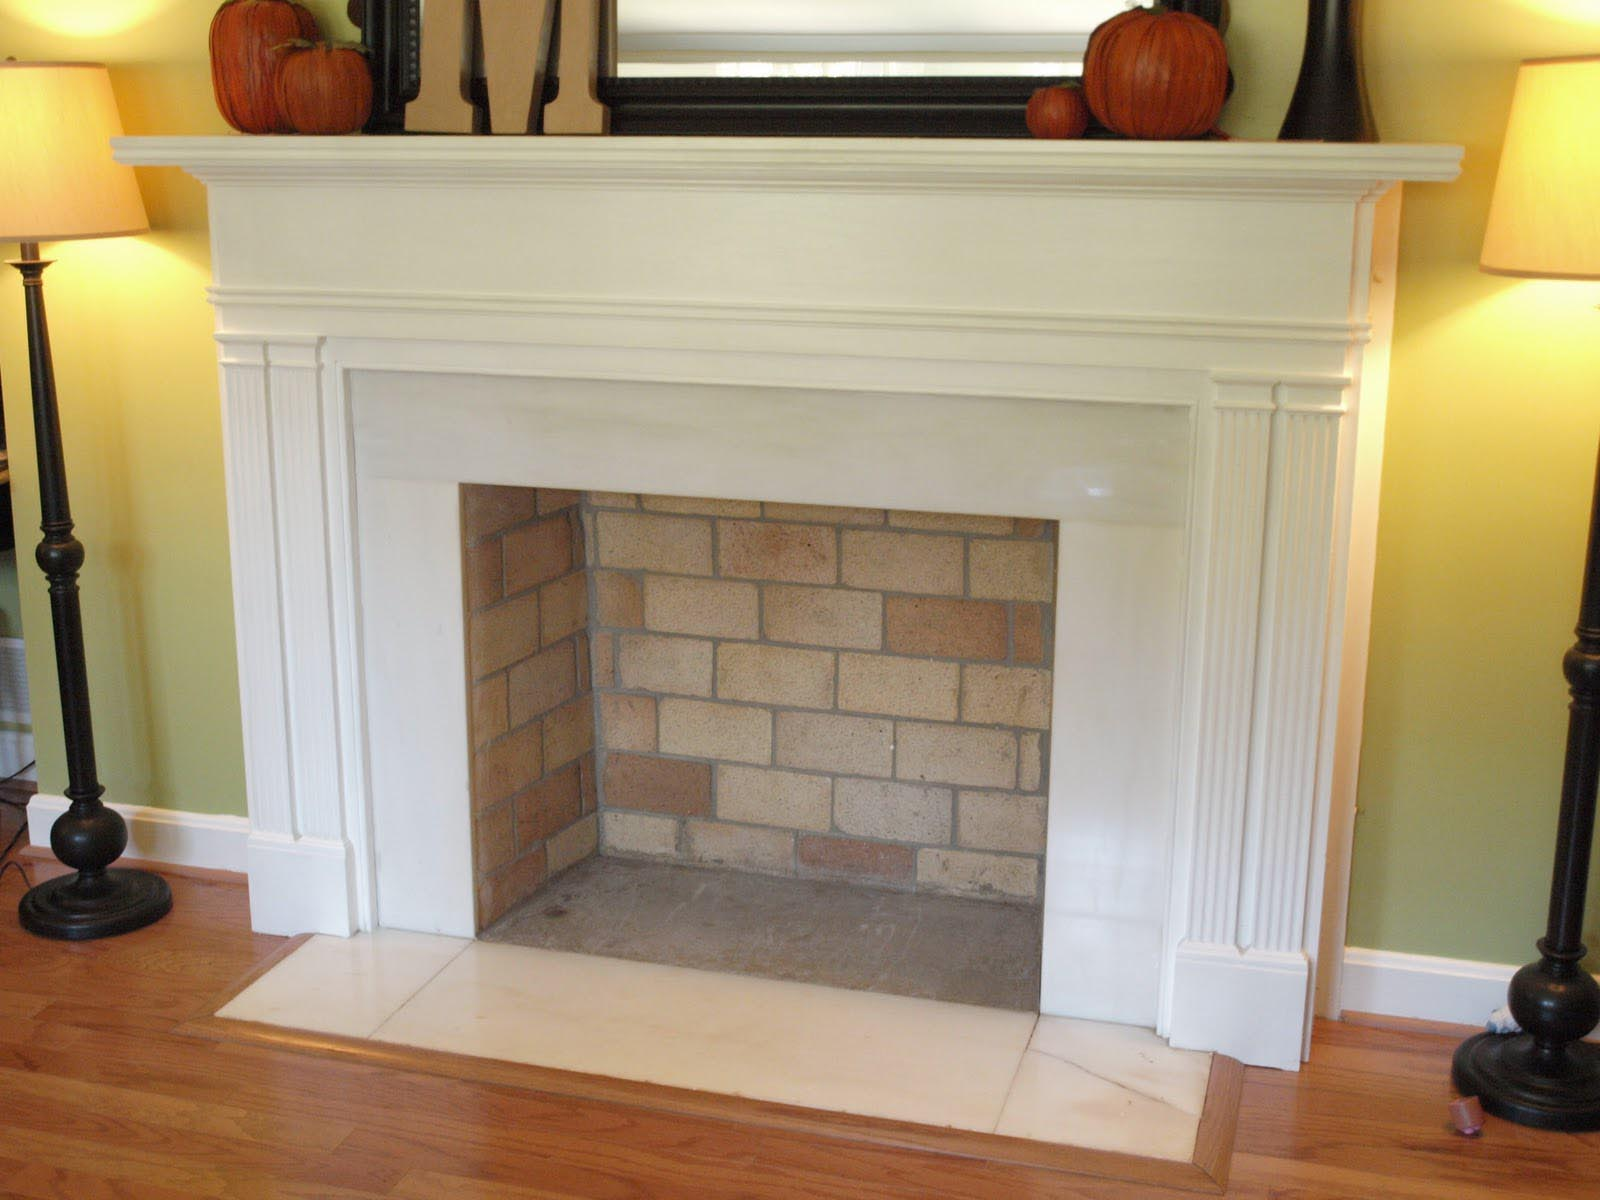 How to Make a Fake Fireplace Out of a Bookshelf